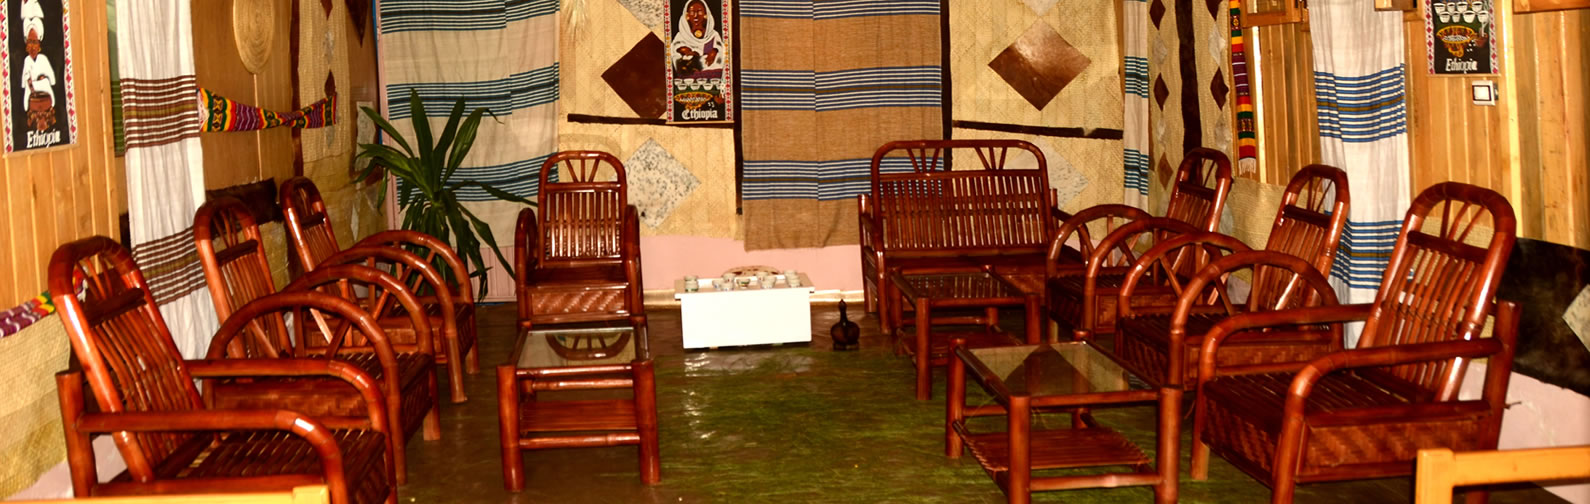 NGG Hotel Traditional Coffee House